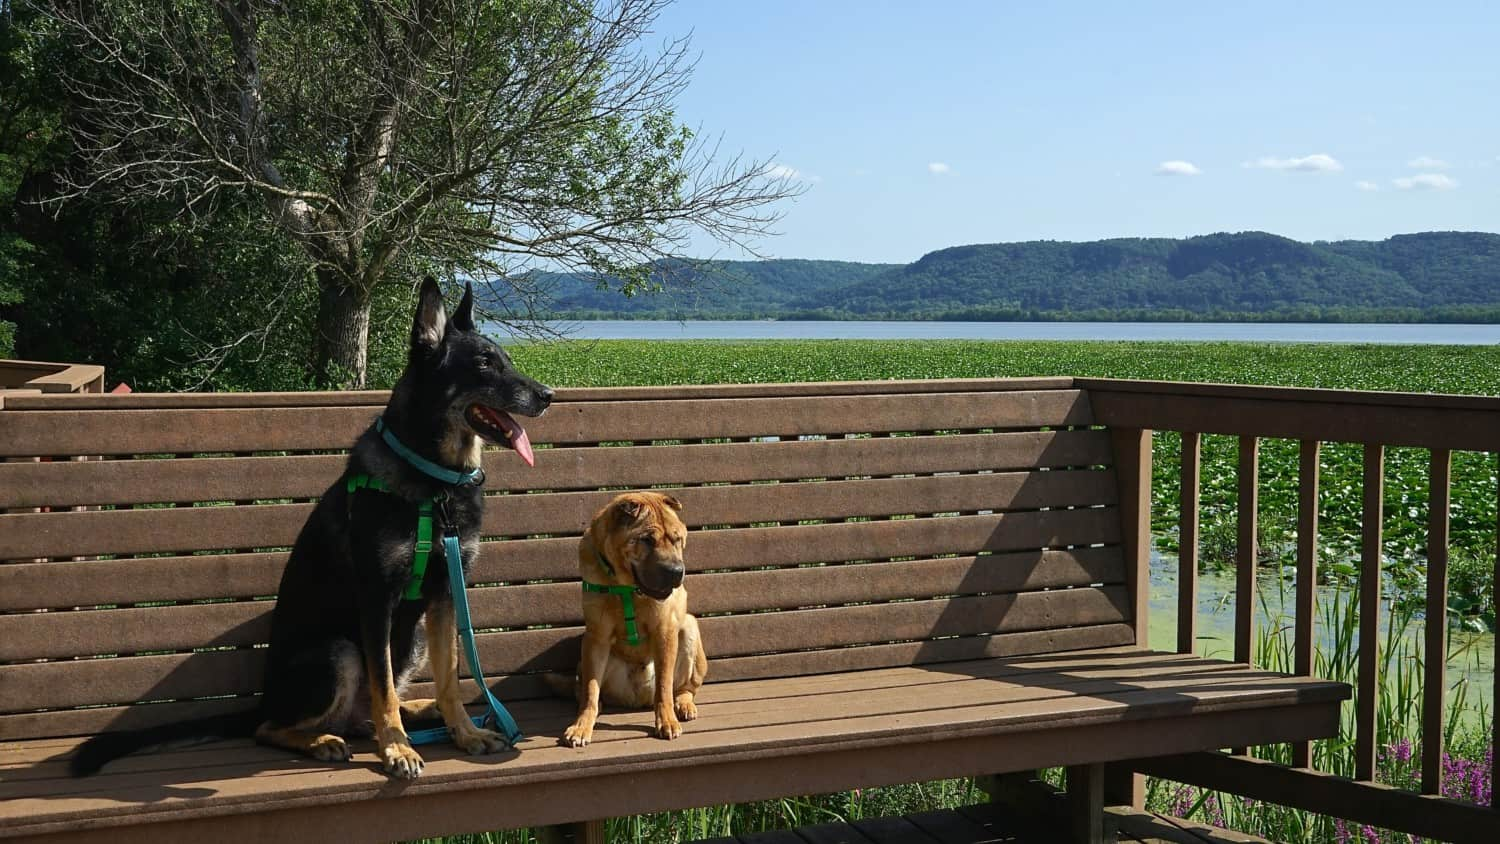 Wisconsin's Top Pet Friendly Attraction: Trempealeau National Wildlife Refuge | GoPetFriendly.com